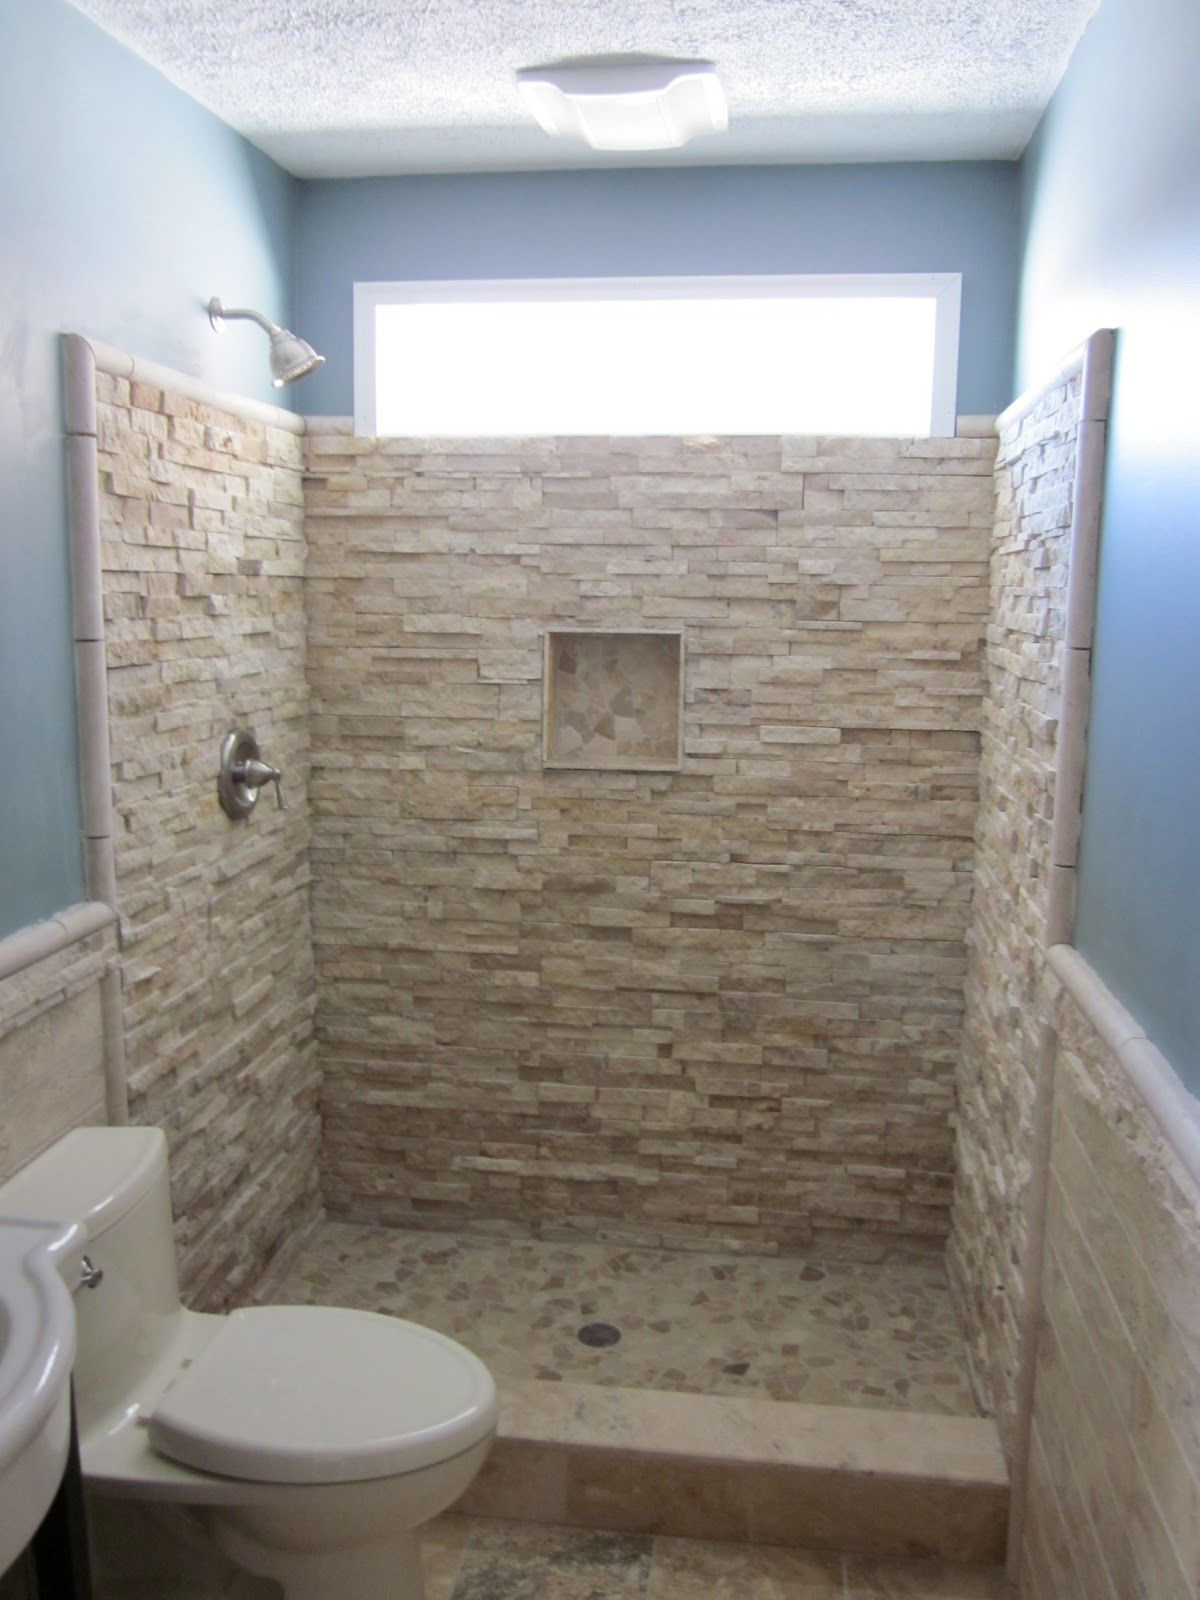 Ceramic Tile Bathroom Shower Small Space Big Shower Create The Kitchen Or Bath Of Your Dreams By Small Bathroom Tiles Small Bathroom Remodel Tile Bathroom